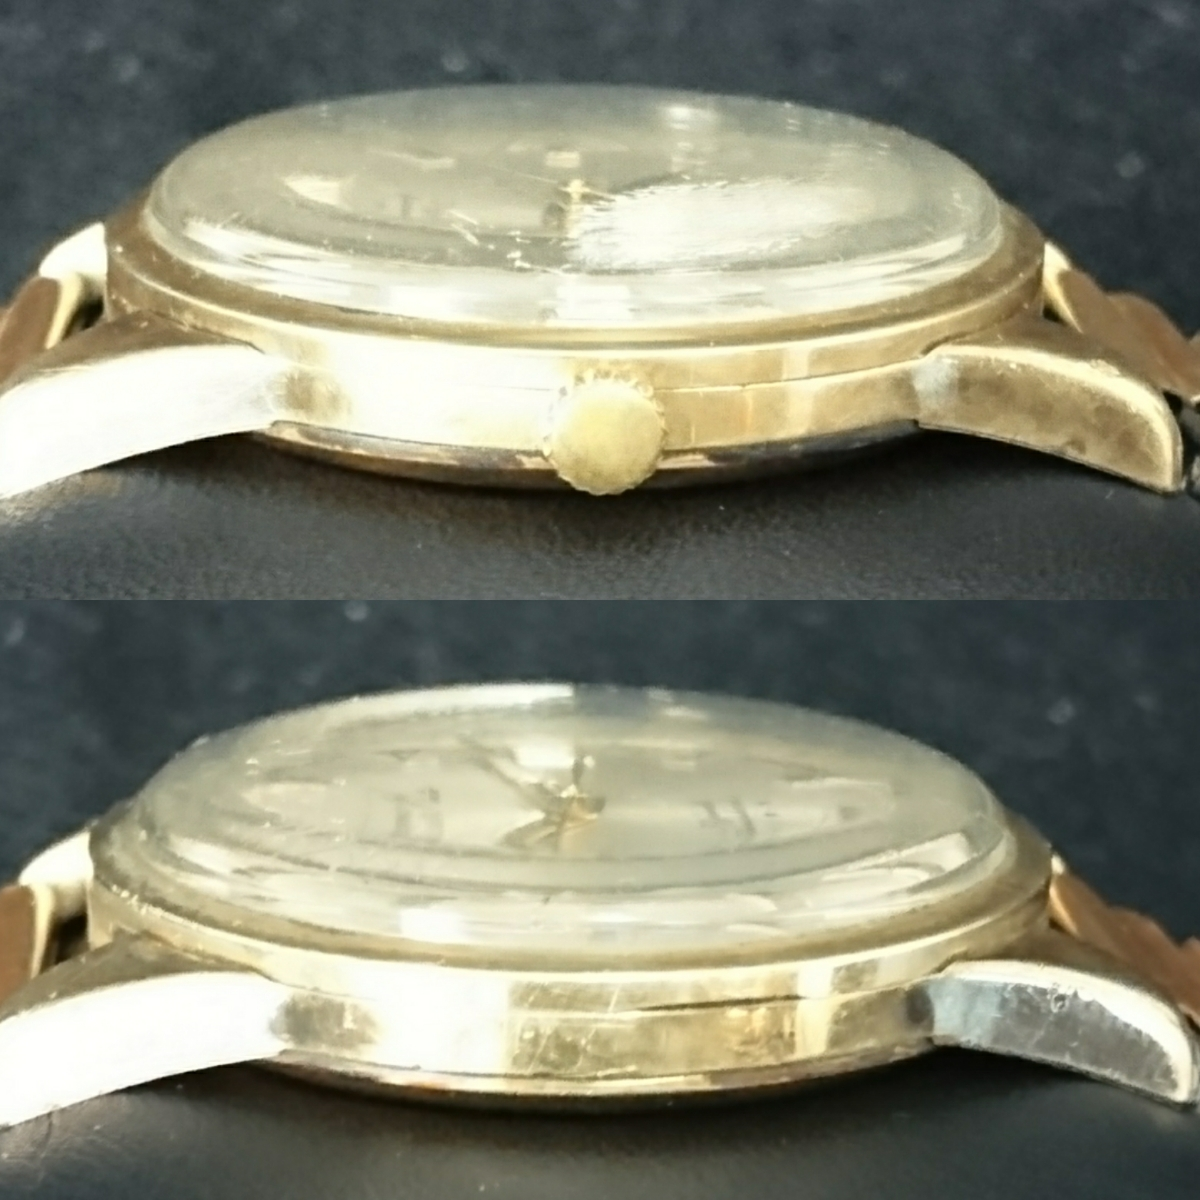 CITIZEN シチズン Super Jet Auto Dater 39jewels スーパージェット 14kGOLDFILLED  稼動品 防風傷あり_画像3